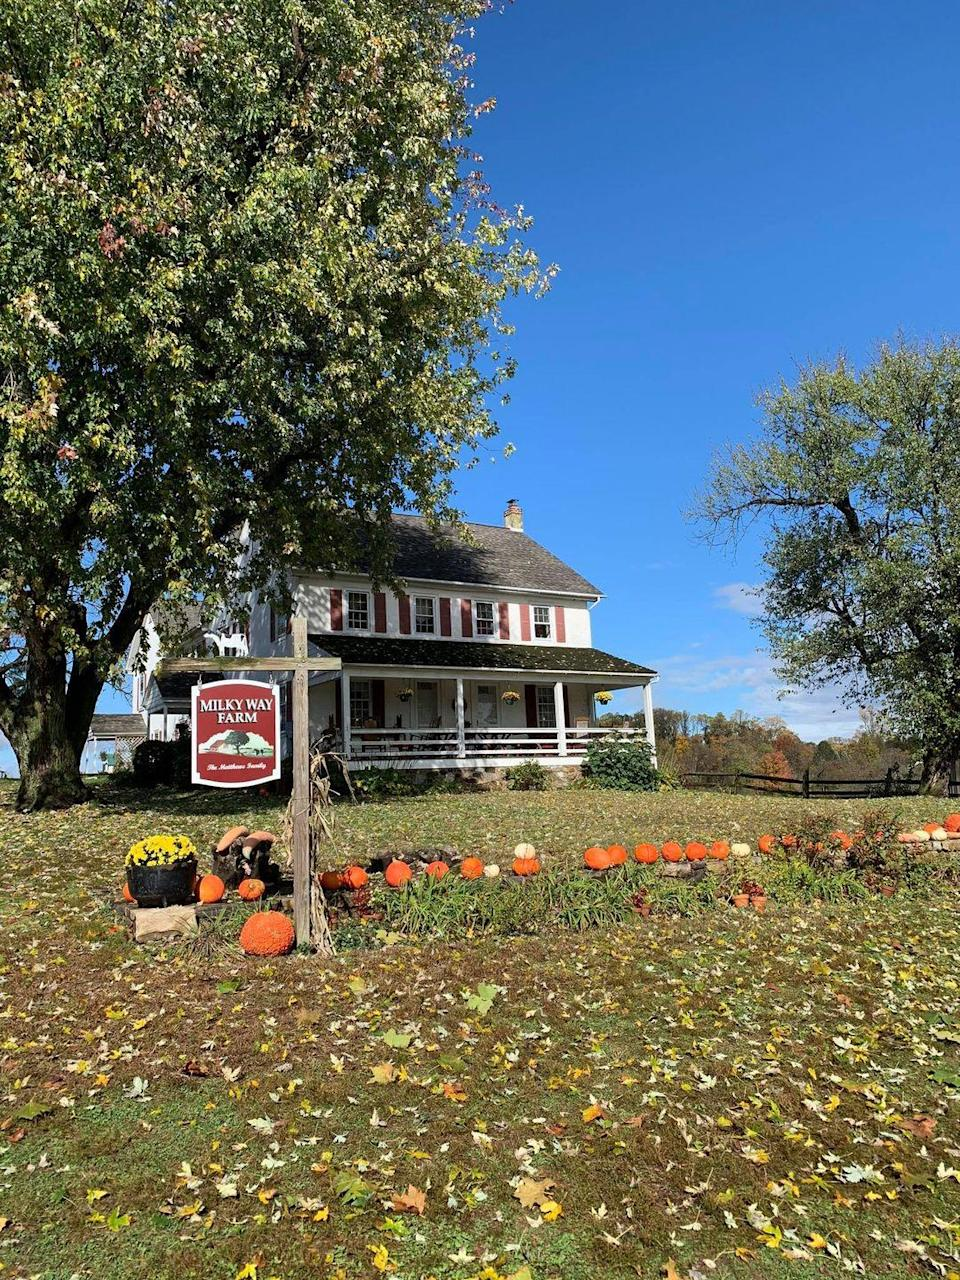 """<p><strong>Chester Springs, Pennsylvania</strong></p><p>Along with nearly 25,000 pumpkins, <strong><a href=""""http://www.milkywayfarm.com/"""" rel=""""nofollow noopener"""" target=""""_blank"""" data-ylk=""""slk:Milky Way Farm"""" class=""""link rapid-noclick-resp"""">Milky Way Farm</a> </strong>also grows corn, gourds, squash and more. Try their creamery's homemade ice cream or get some fresh air while walking through their fields. On-site hayrides are free, but you'll have to pay for the pumpkin you pick off the vine.</p><p><strong>RELATED: </strong><a href=""""https://www.goodhousekeeping.com/food-recipes/easy/g926/easy-fall-dinner-recipes/"""" rel=""""nofollow noopener"""" target=""""_blank"""" data-ylk=""""slk:60 Tasty, Easy Fall Dinner Recipes for Busy Weeknights"""" class=""""link rapid-noclick-resp"""">60 Tasty, Easy Fall Dinner Recipes for Busy Weeknights</a> </p>"""